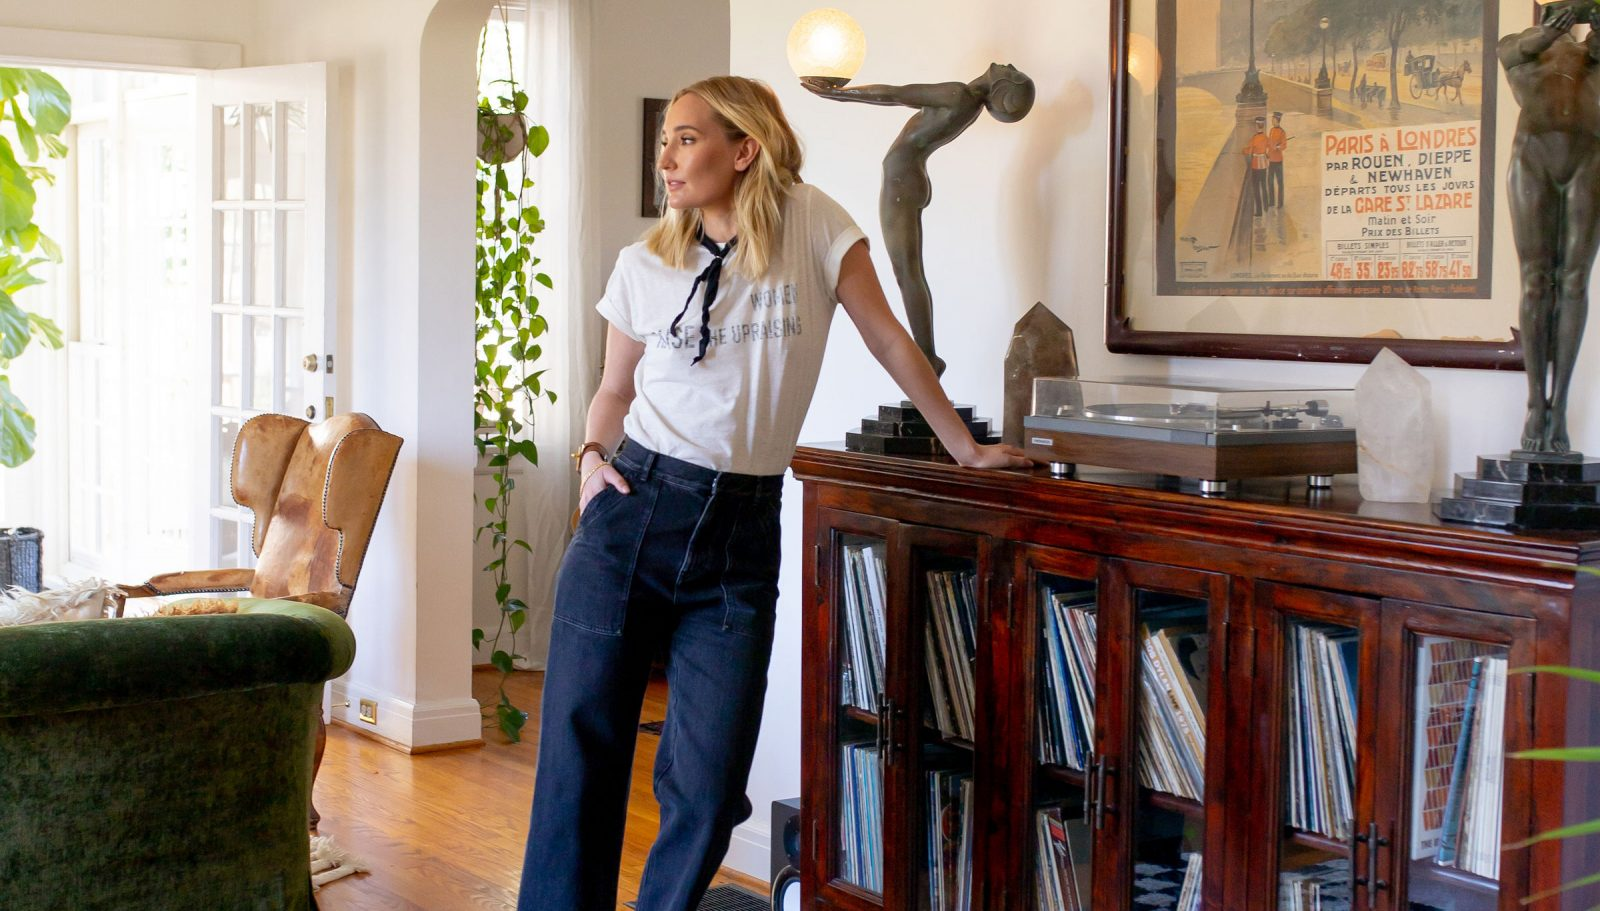 Ruby Stewart showing her personal style at home